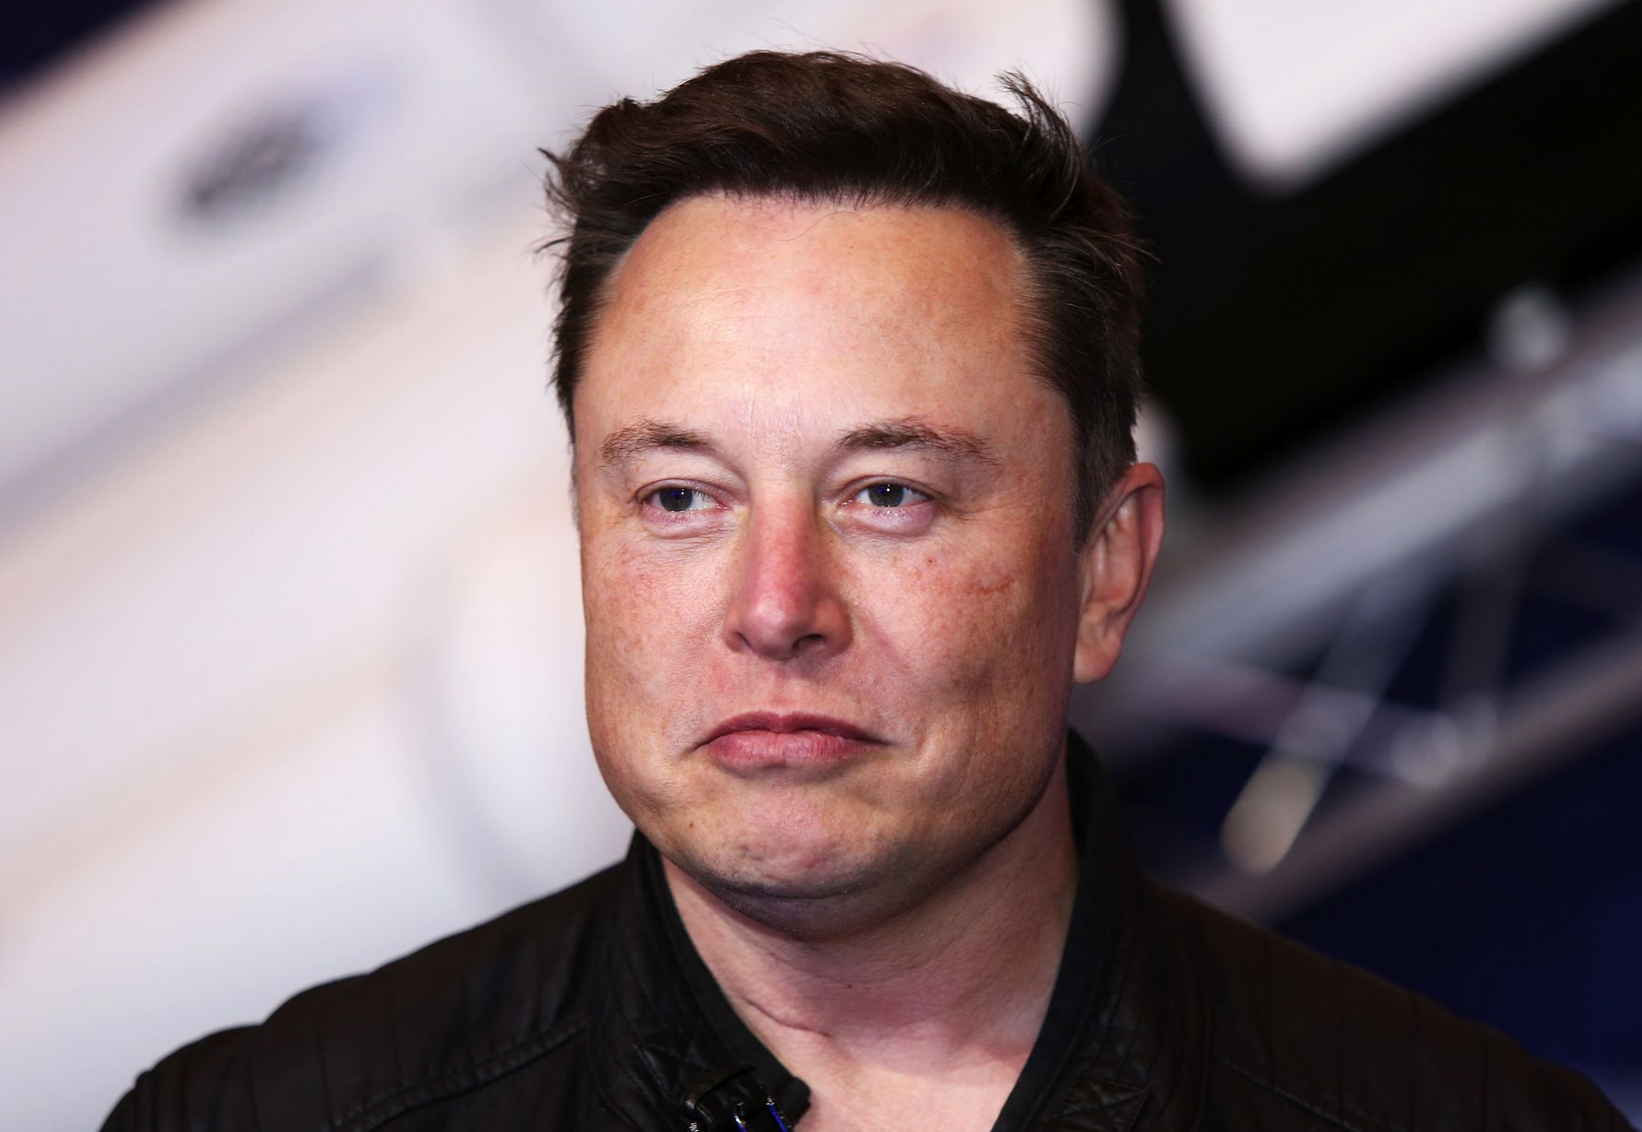 Musk Inquires About Moving 'Large Transactions' To Bitcoin